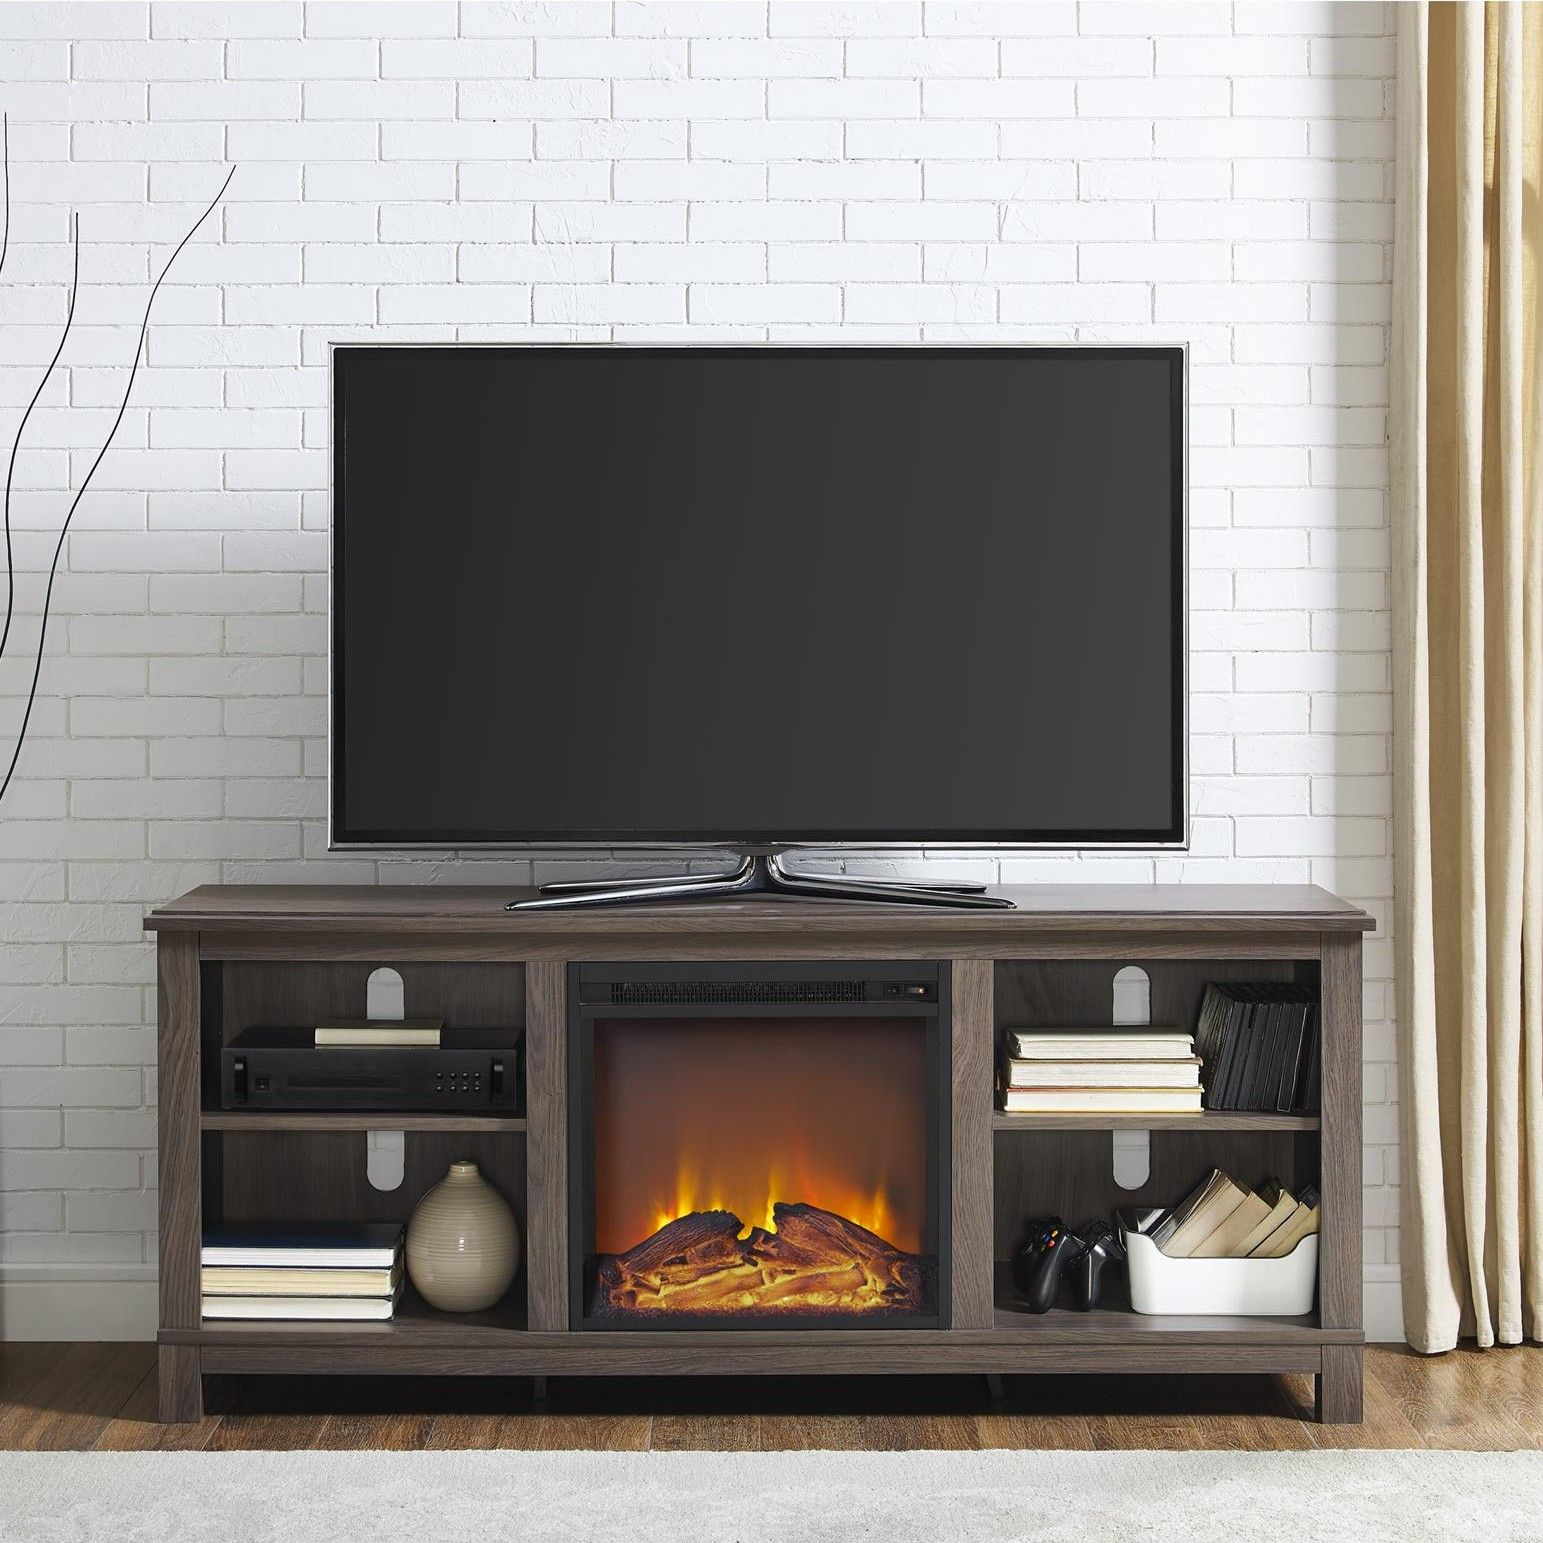 Edgewood tv stand with electric fireplace products pinterest